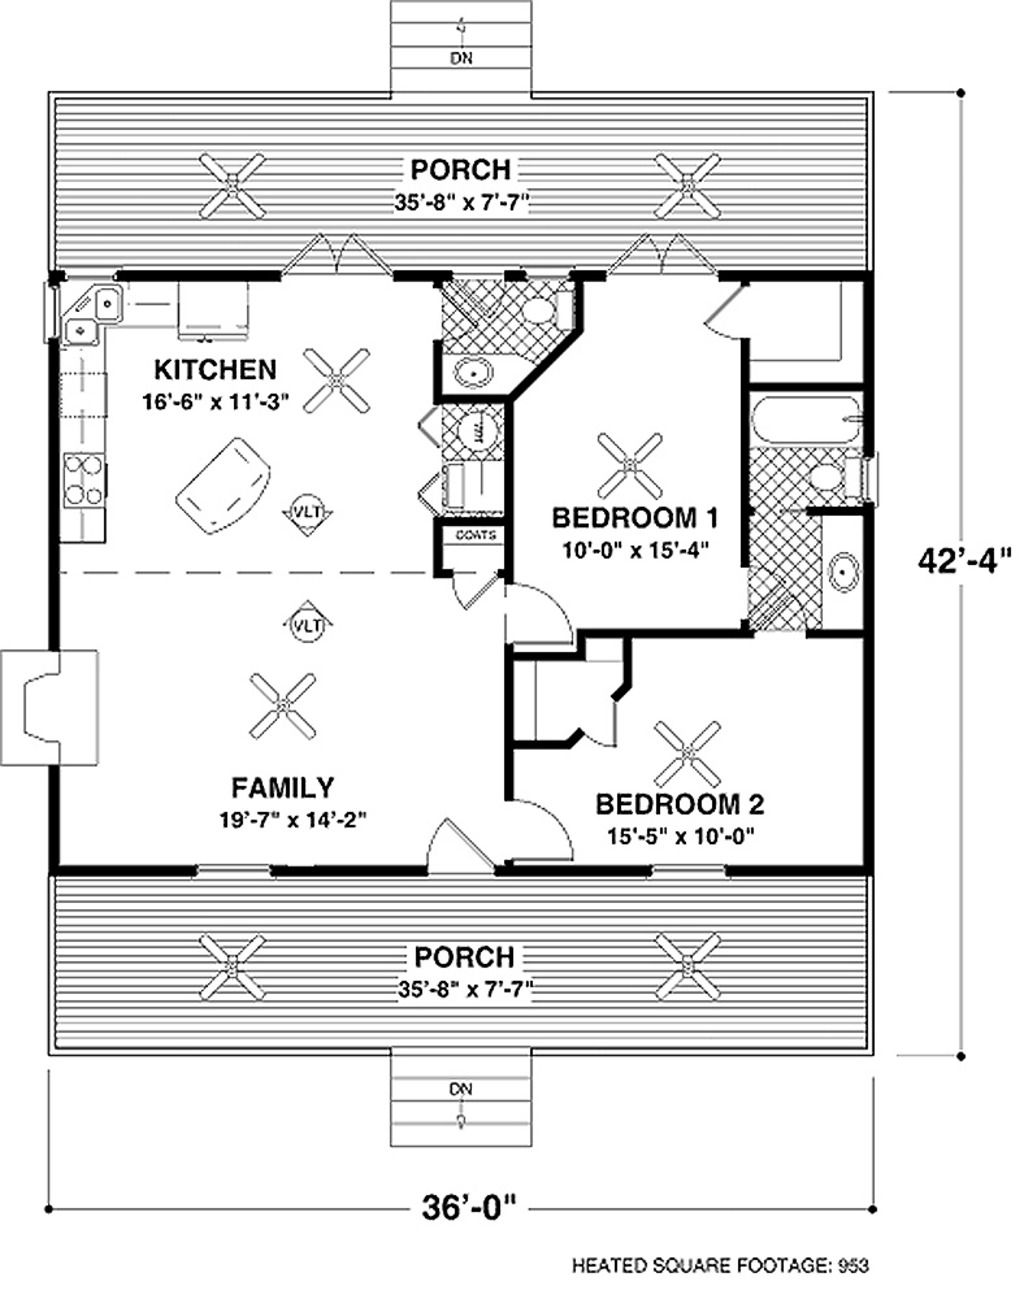 Country Style House Plan 2 Beds 1 5 Baths 953 Sq Ft Plan 56 559 Small House Floor Plans Vacation House Plans House Floor Plans